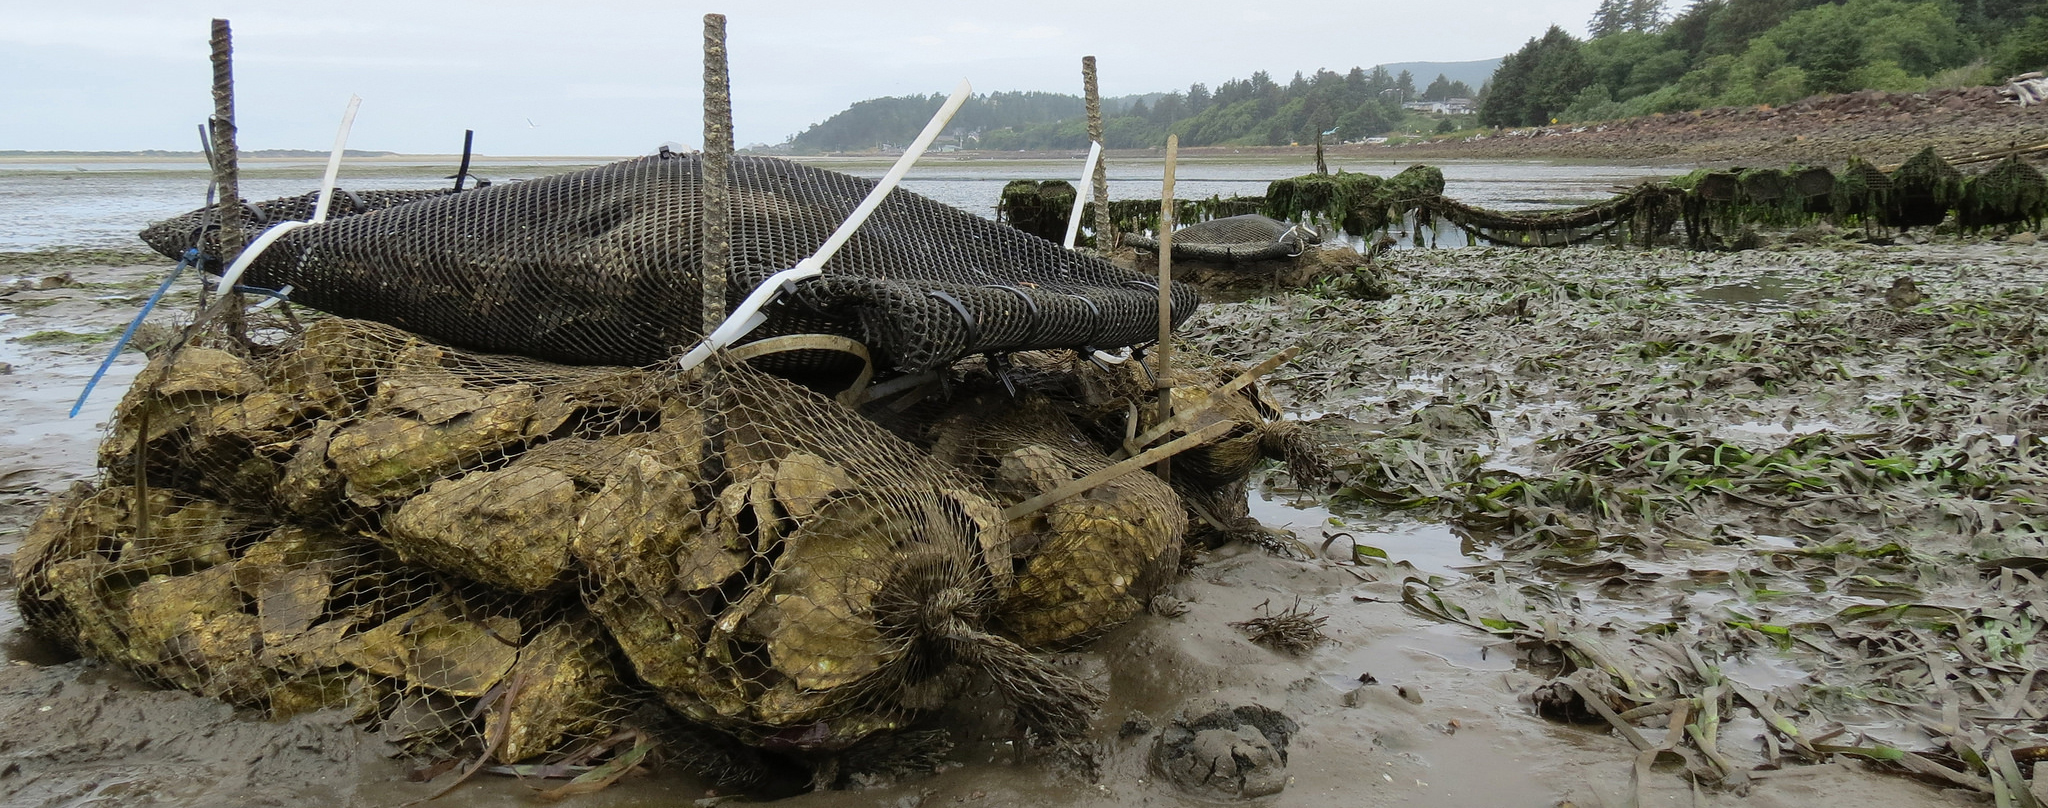 Bags of oysters are strapped to different amounts of empty oyster shells in Netarts Bay as part of a research project